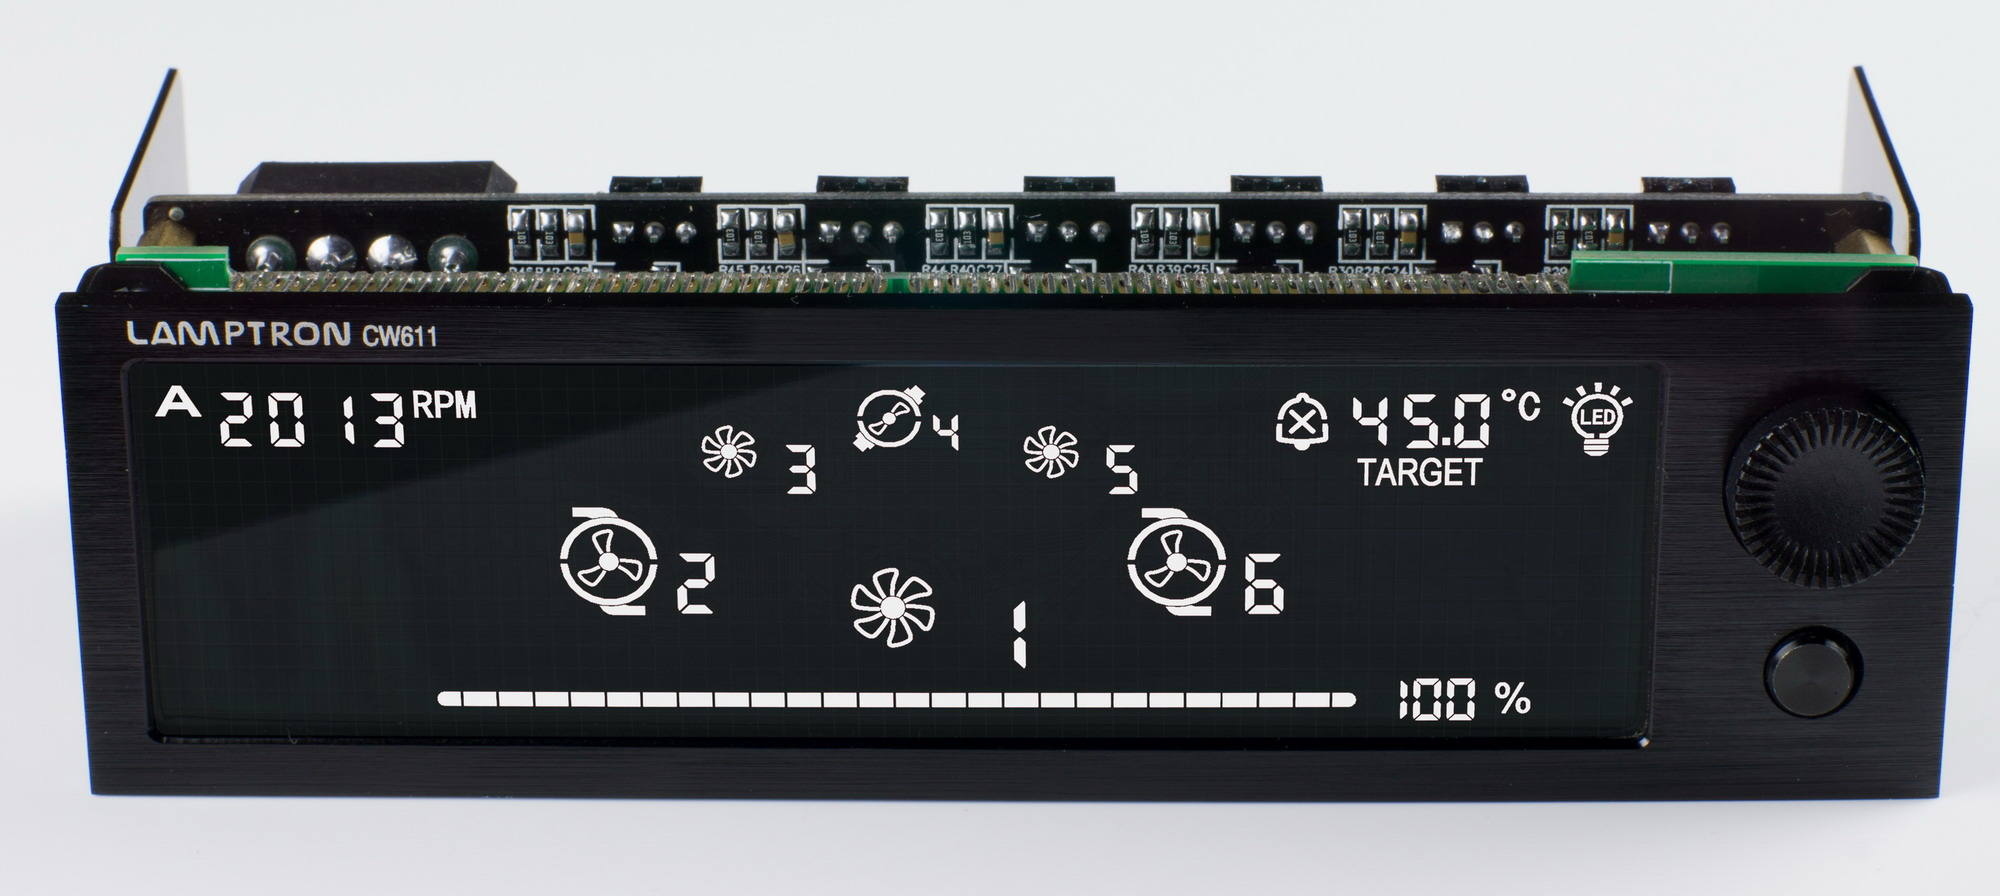 Thread: LAMPTRON CW611 water cooling assisted fan controller! #2F6647